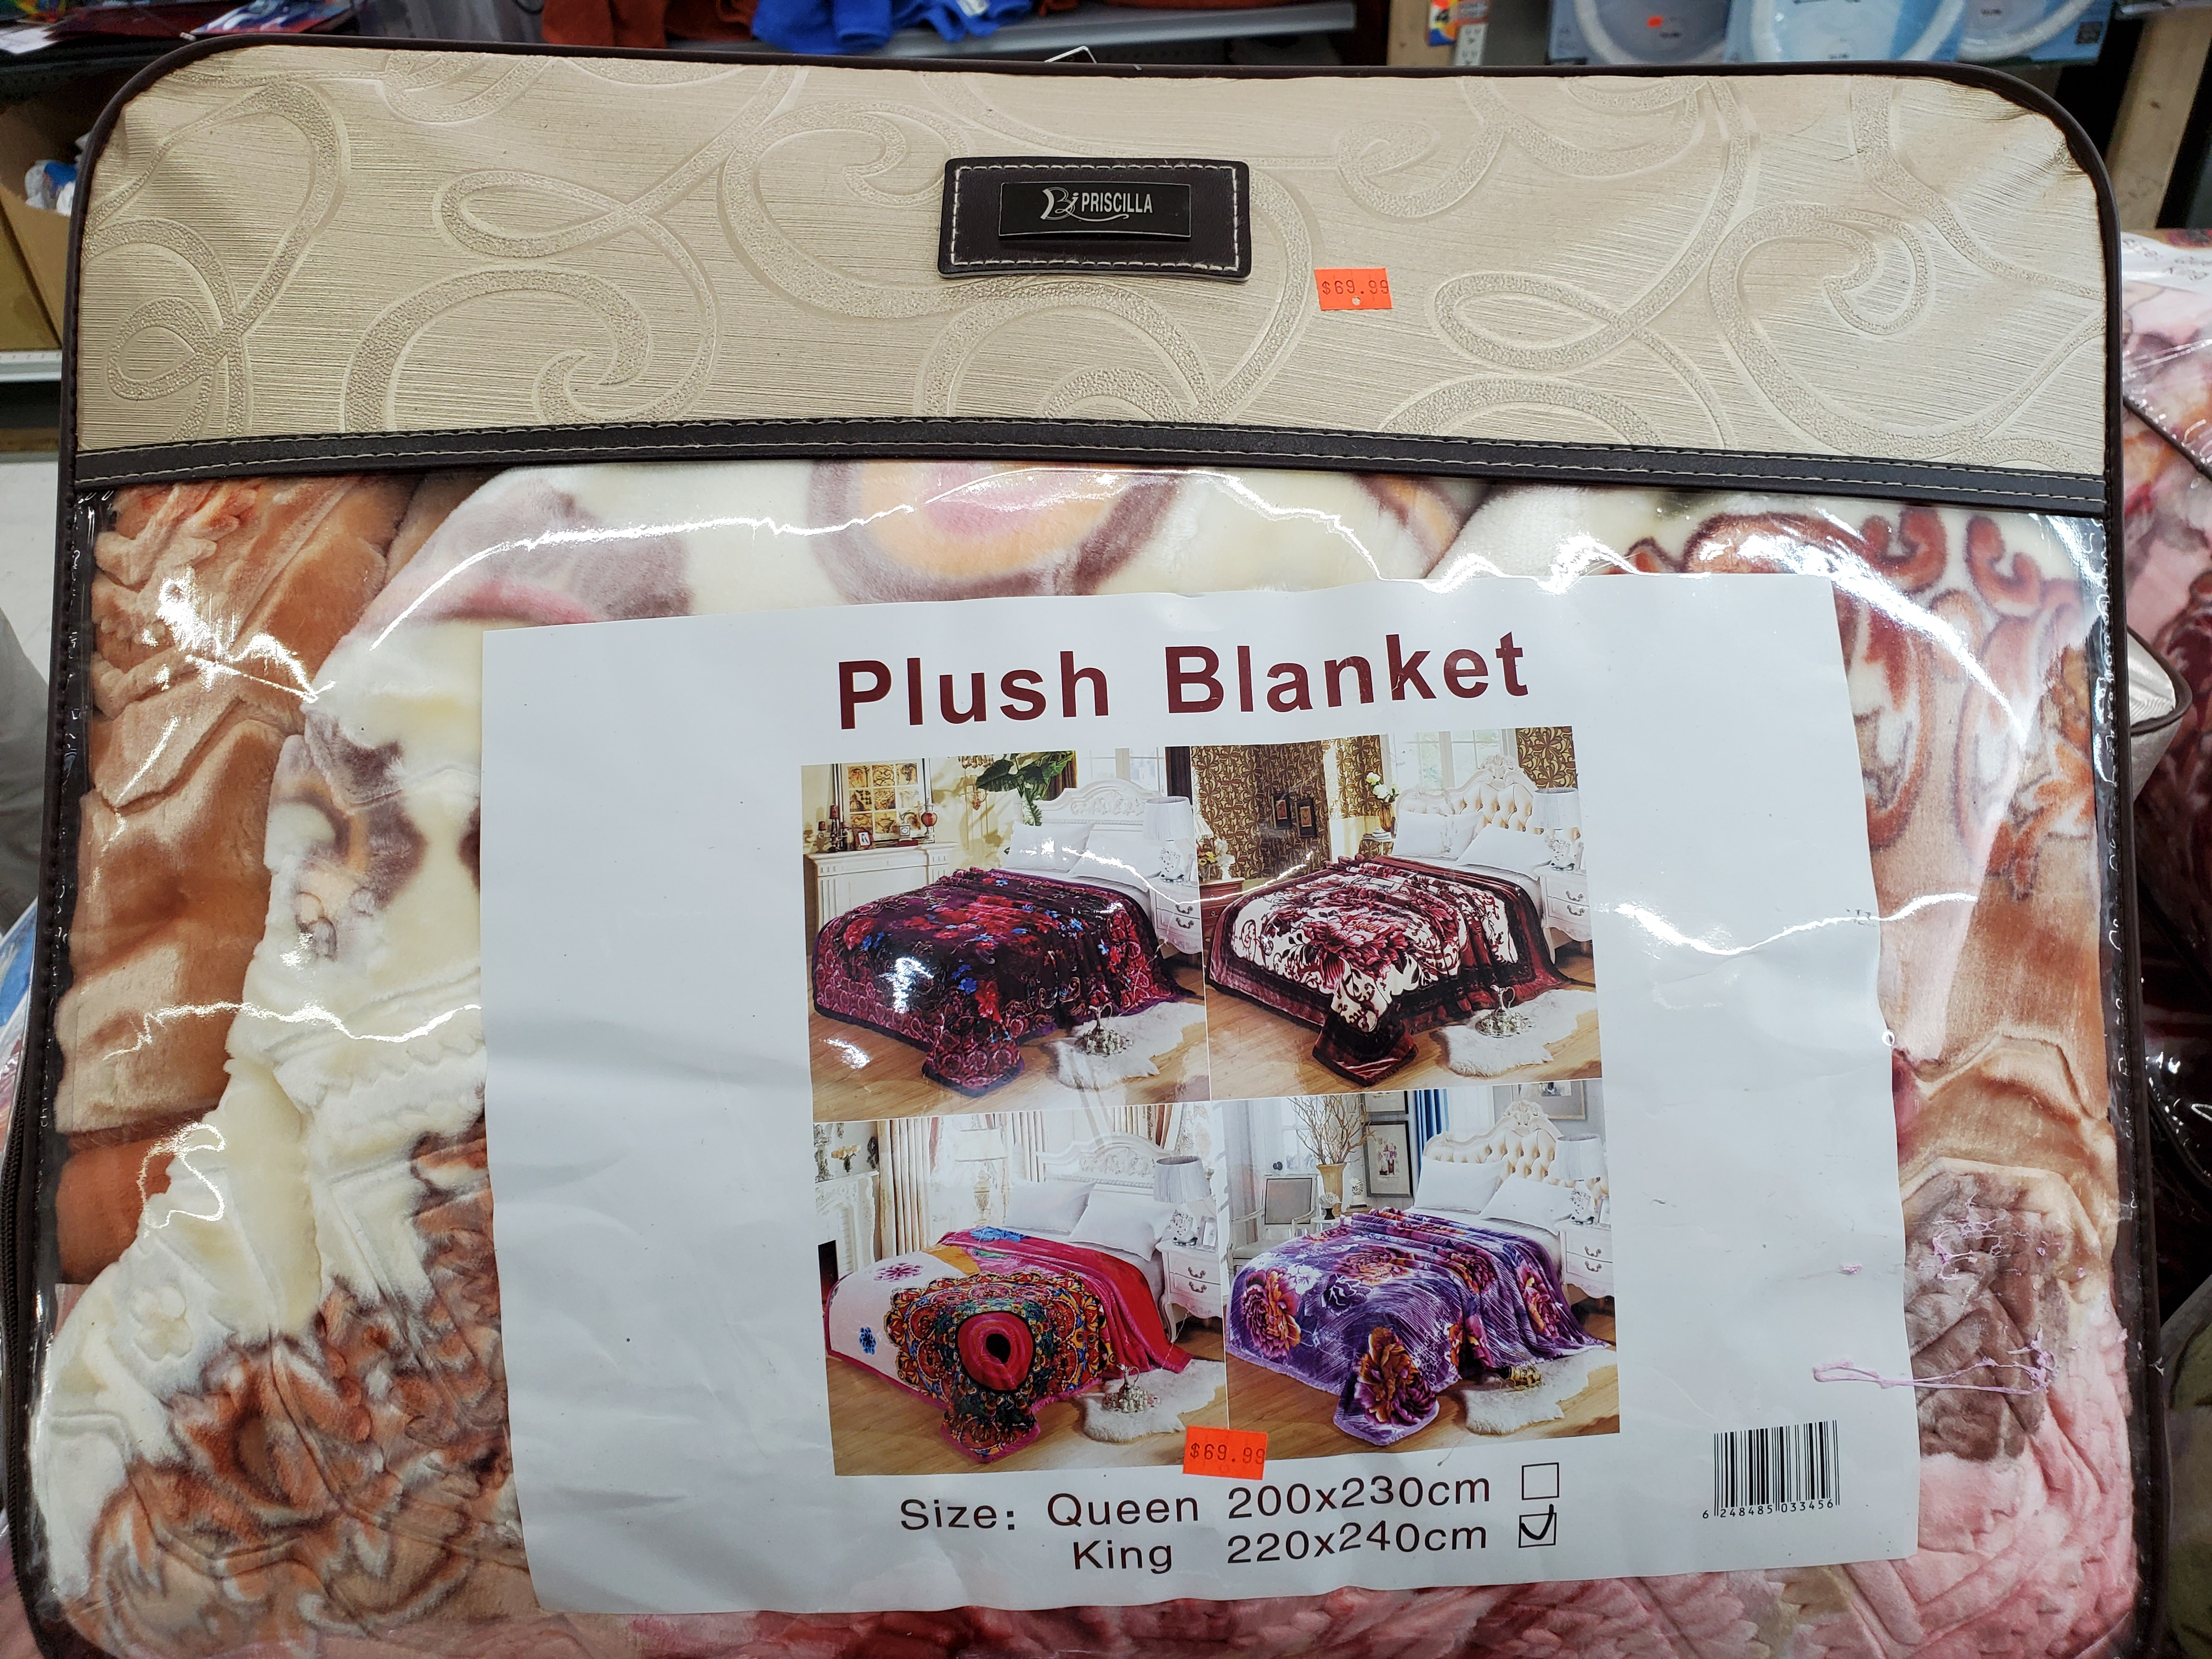 Plush Blanket King Size